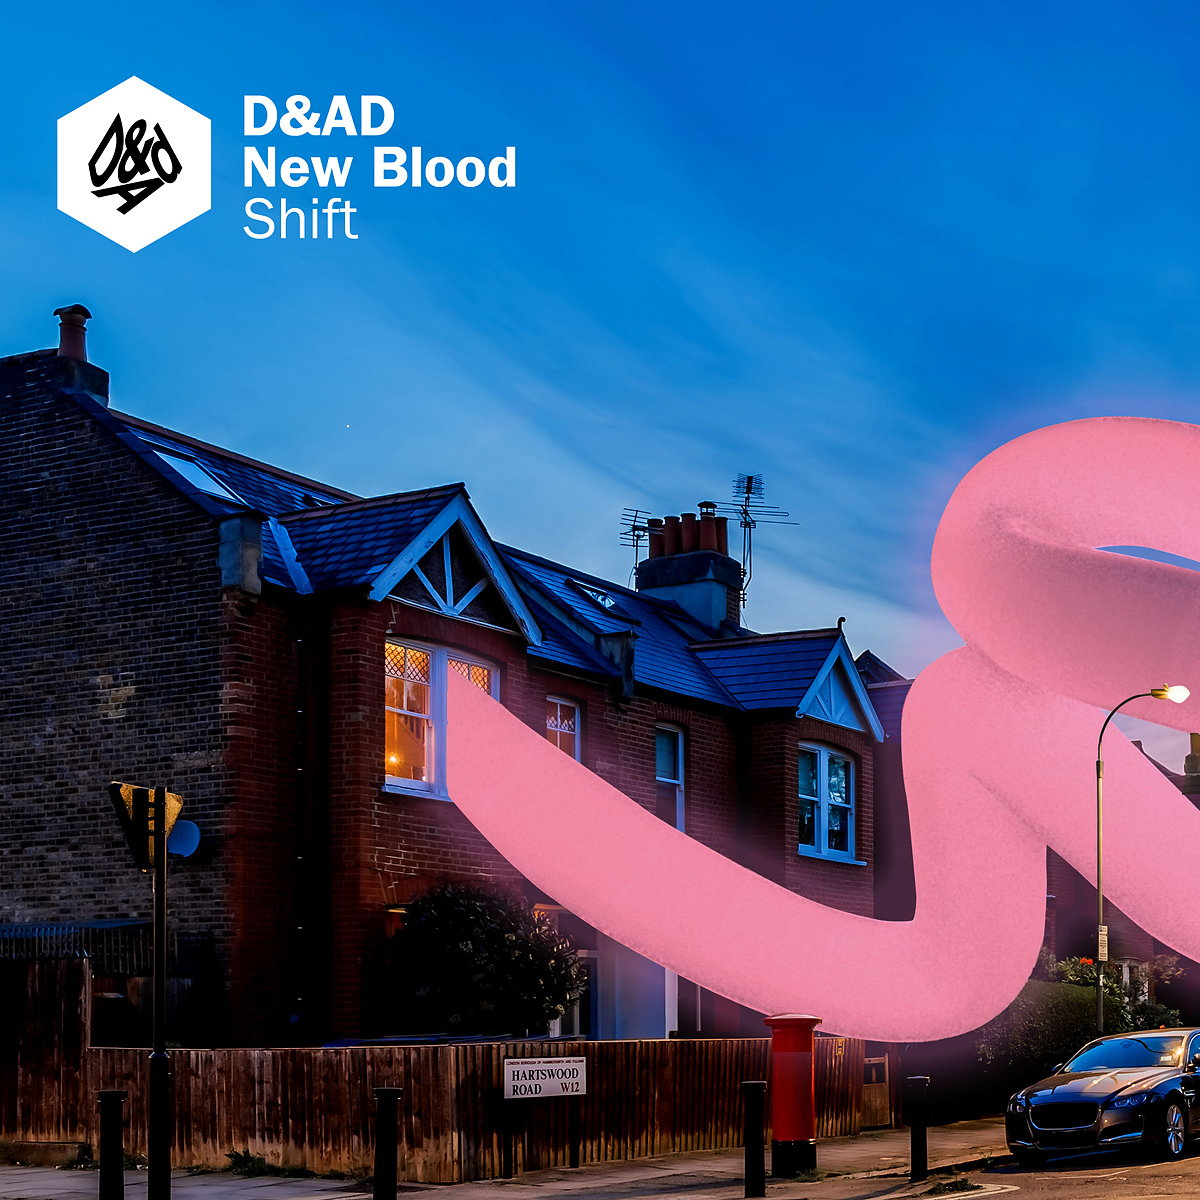 D&AD Launches New Blood Shift 2018